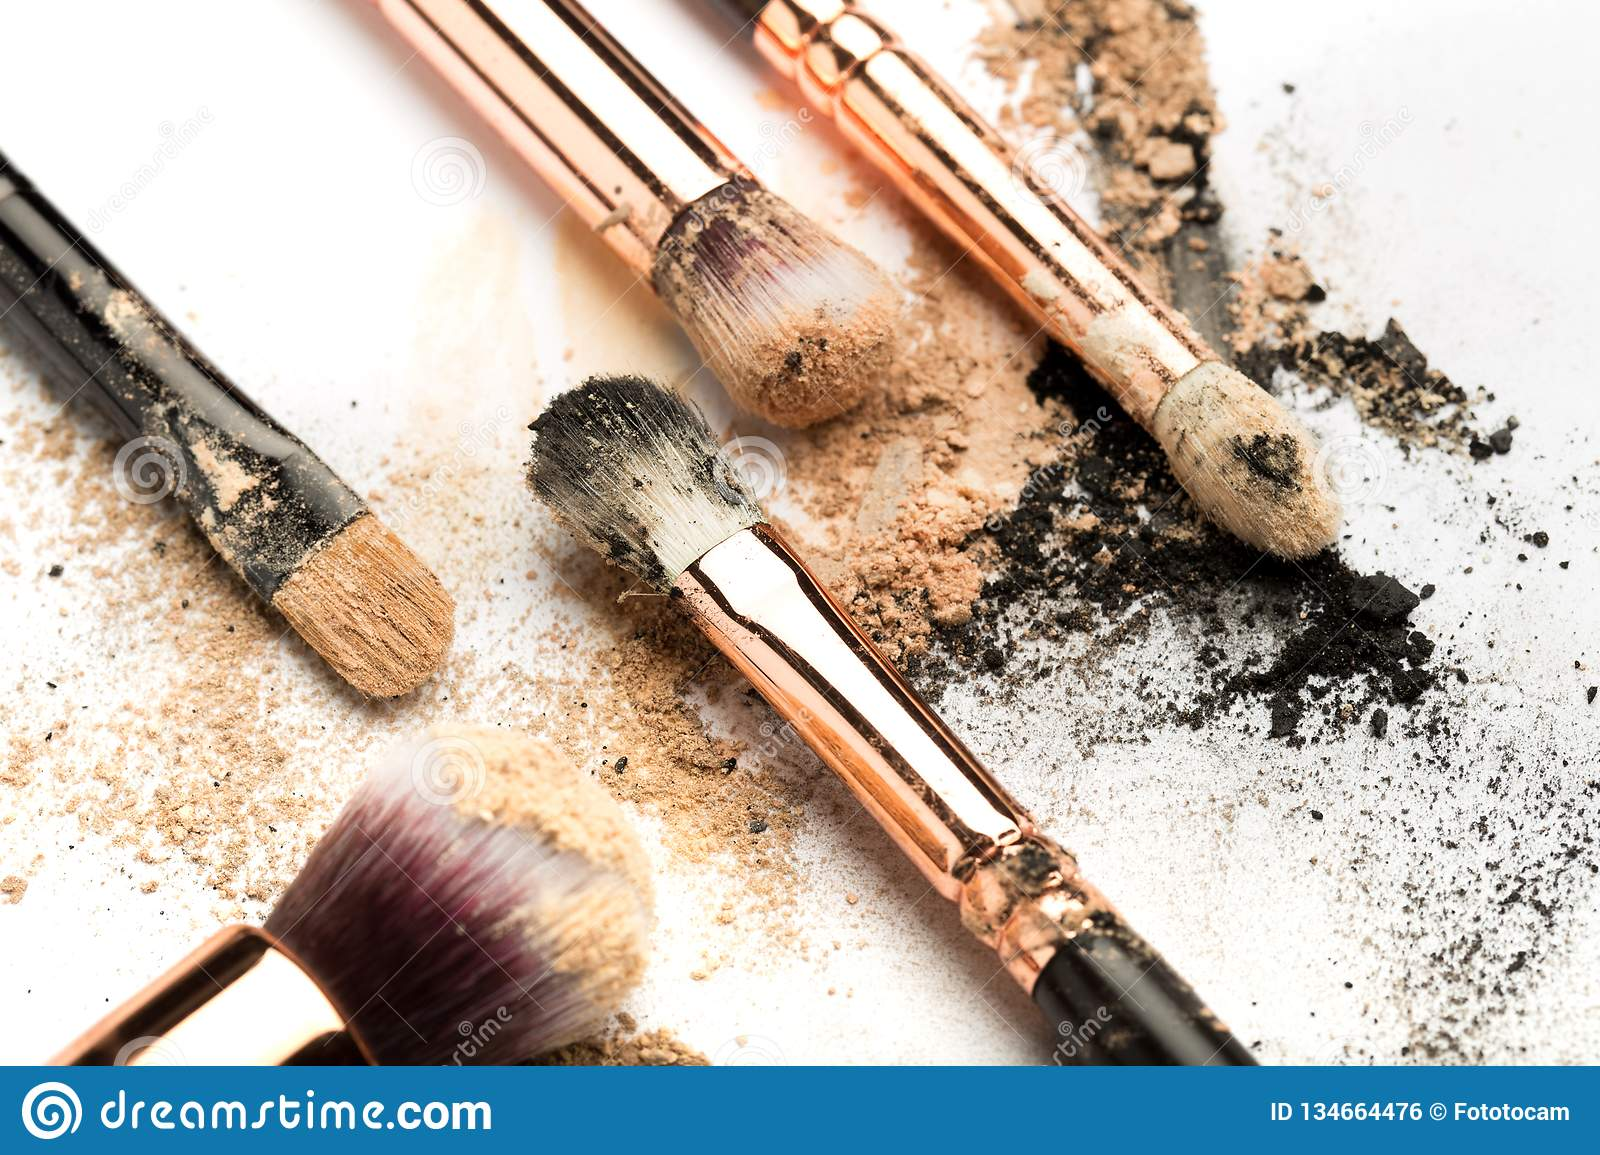 Close-up side view of professional make-up brush with natural bristle and black ferrule with crashed eyeshadow on white